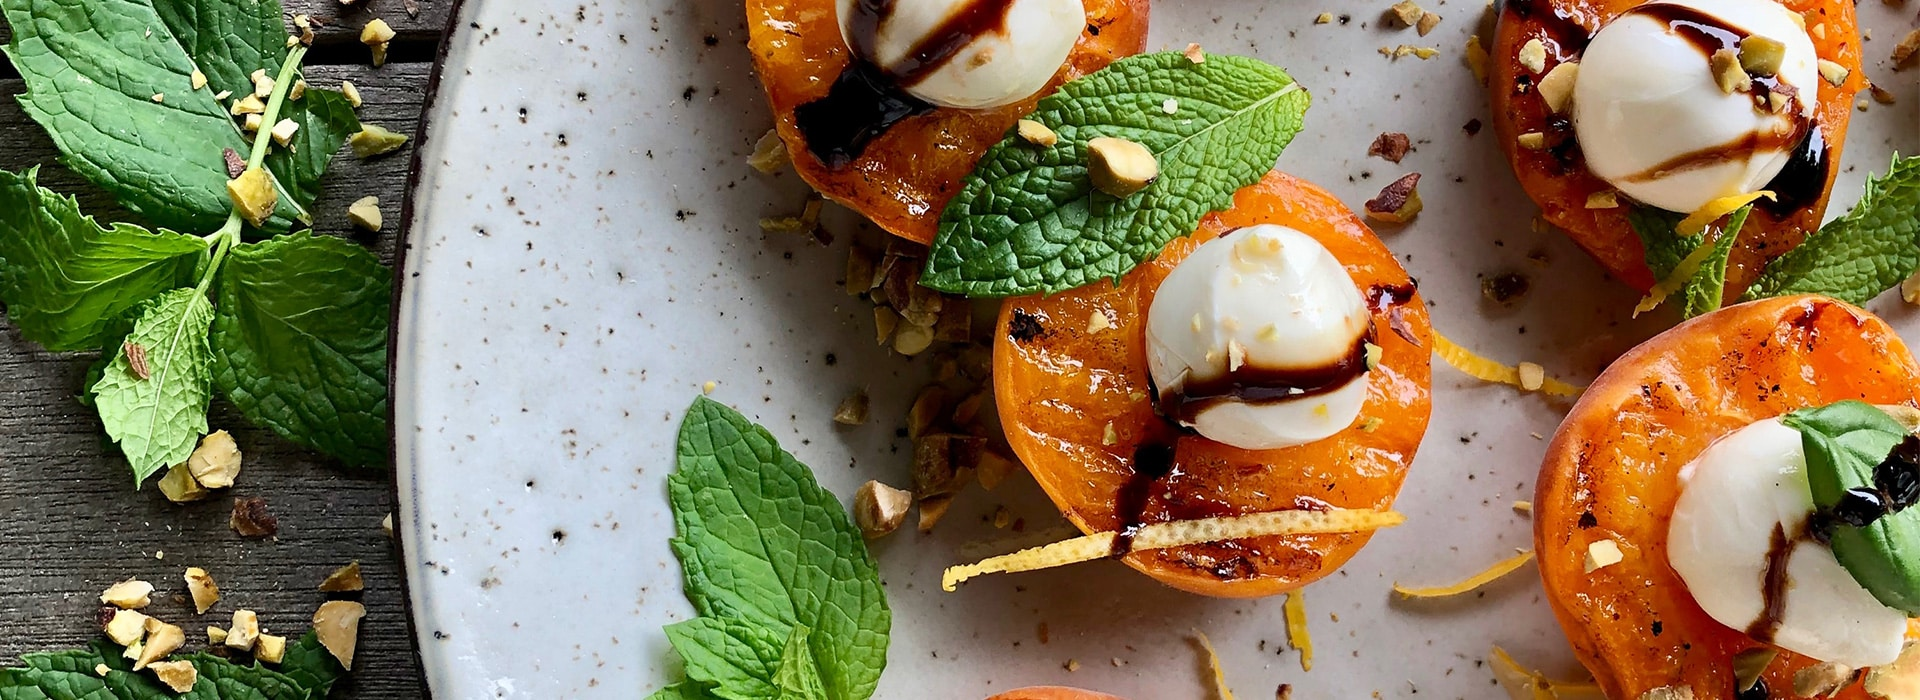 Tomato Cherry bocconcini apricot with balsamic glaze